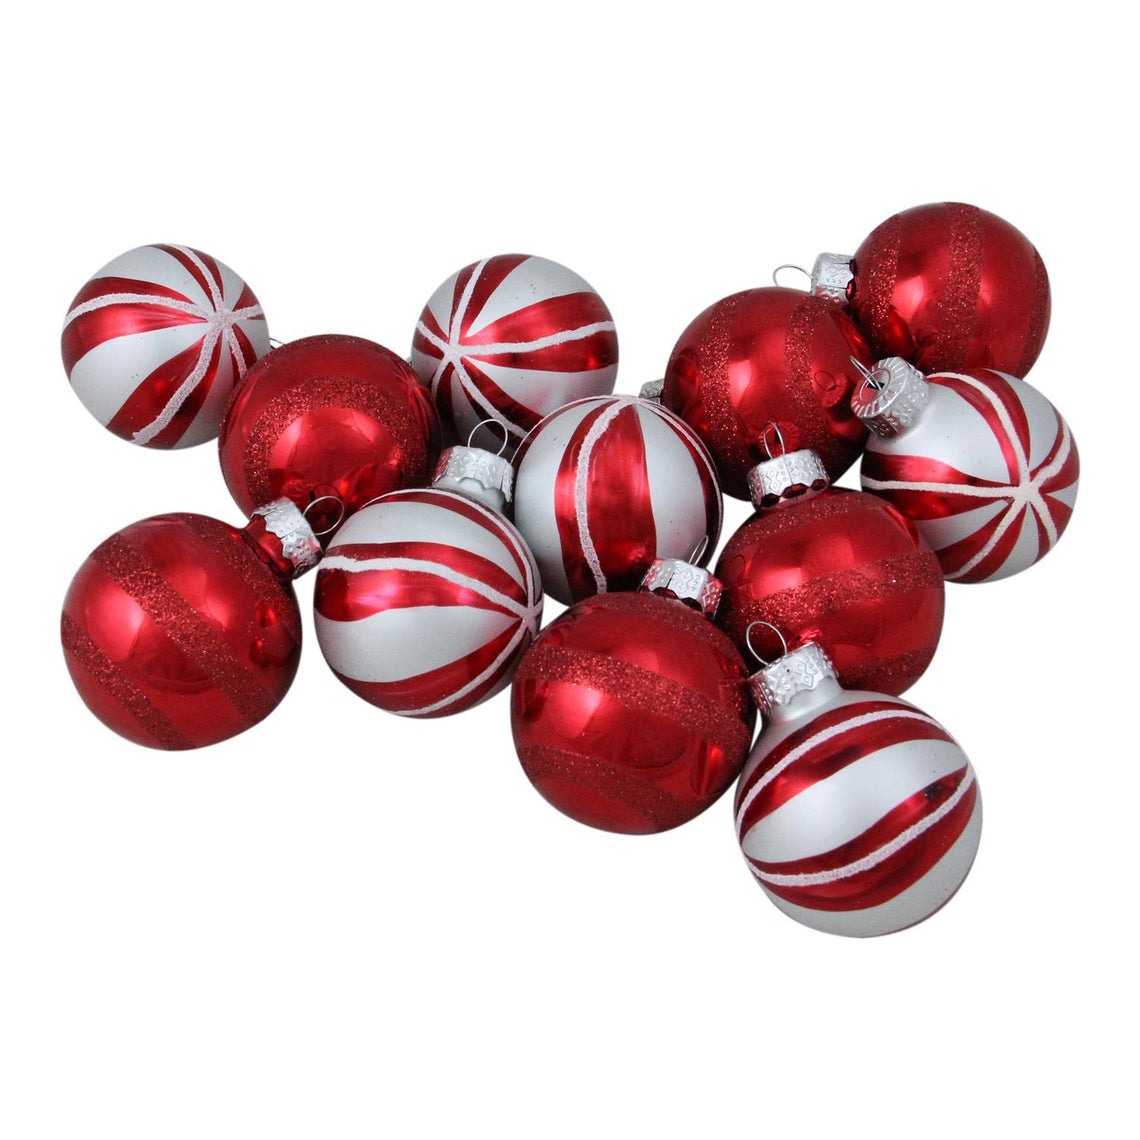 12ct Red and White Swirl Decorated Glass Ball Christmas Ornament Set 1.75